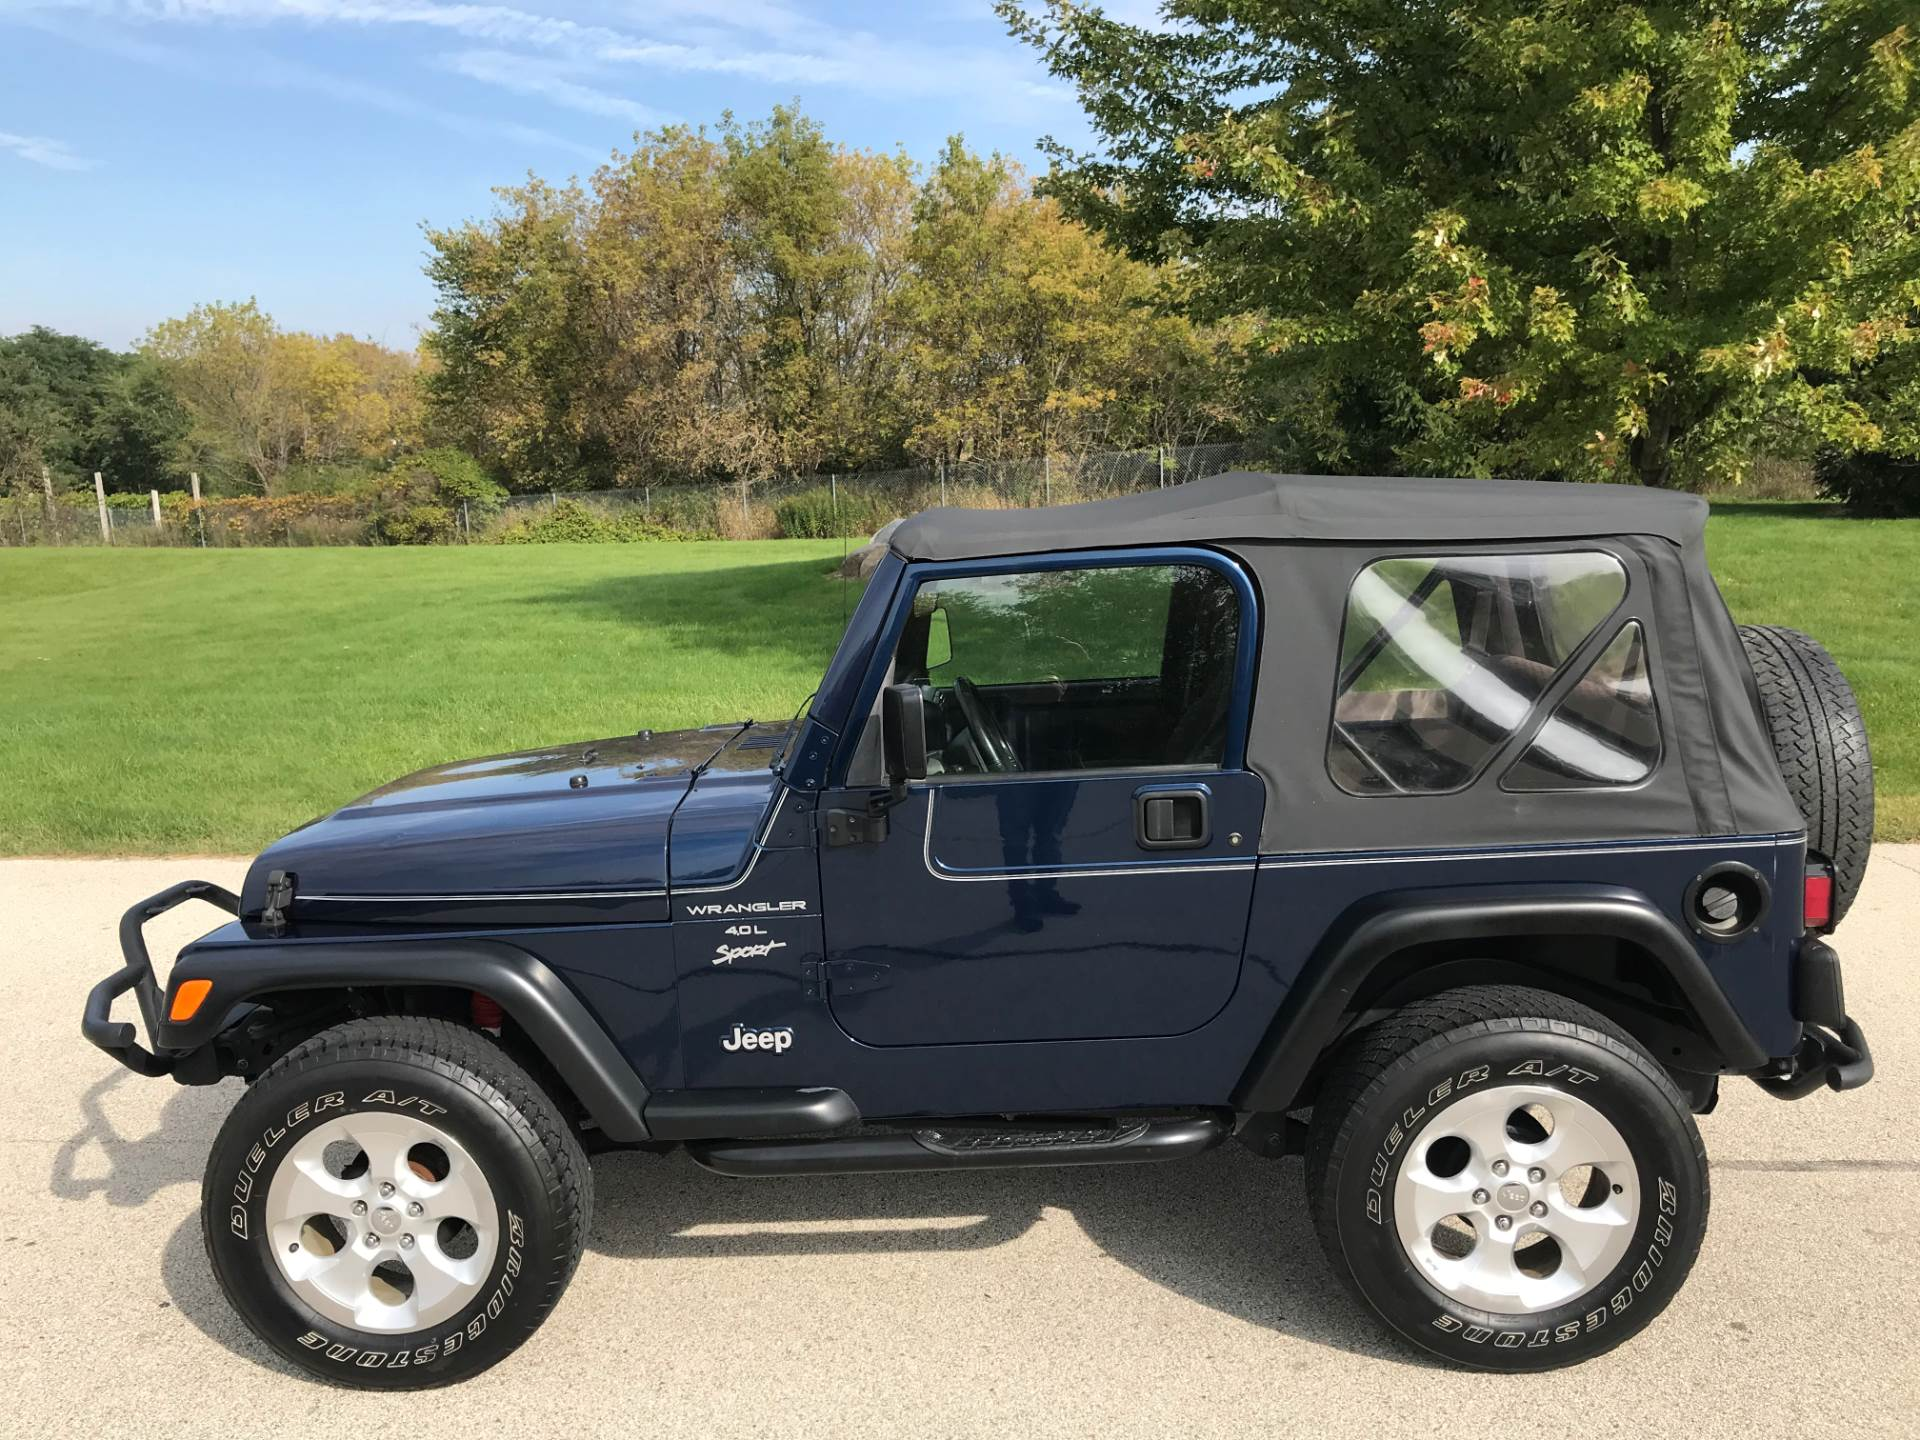 2000 Jeep Wrangler Sport 2dr 4WD SUV in Big Bend, Wisconsin - Photo 45